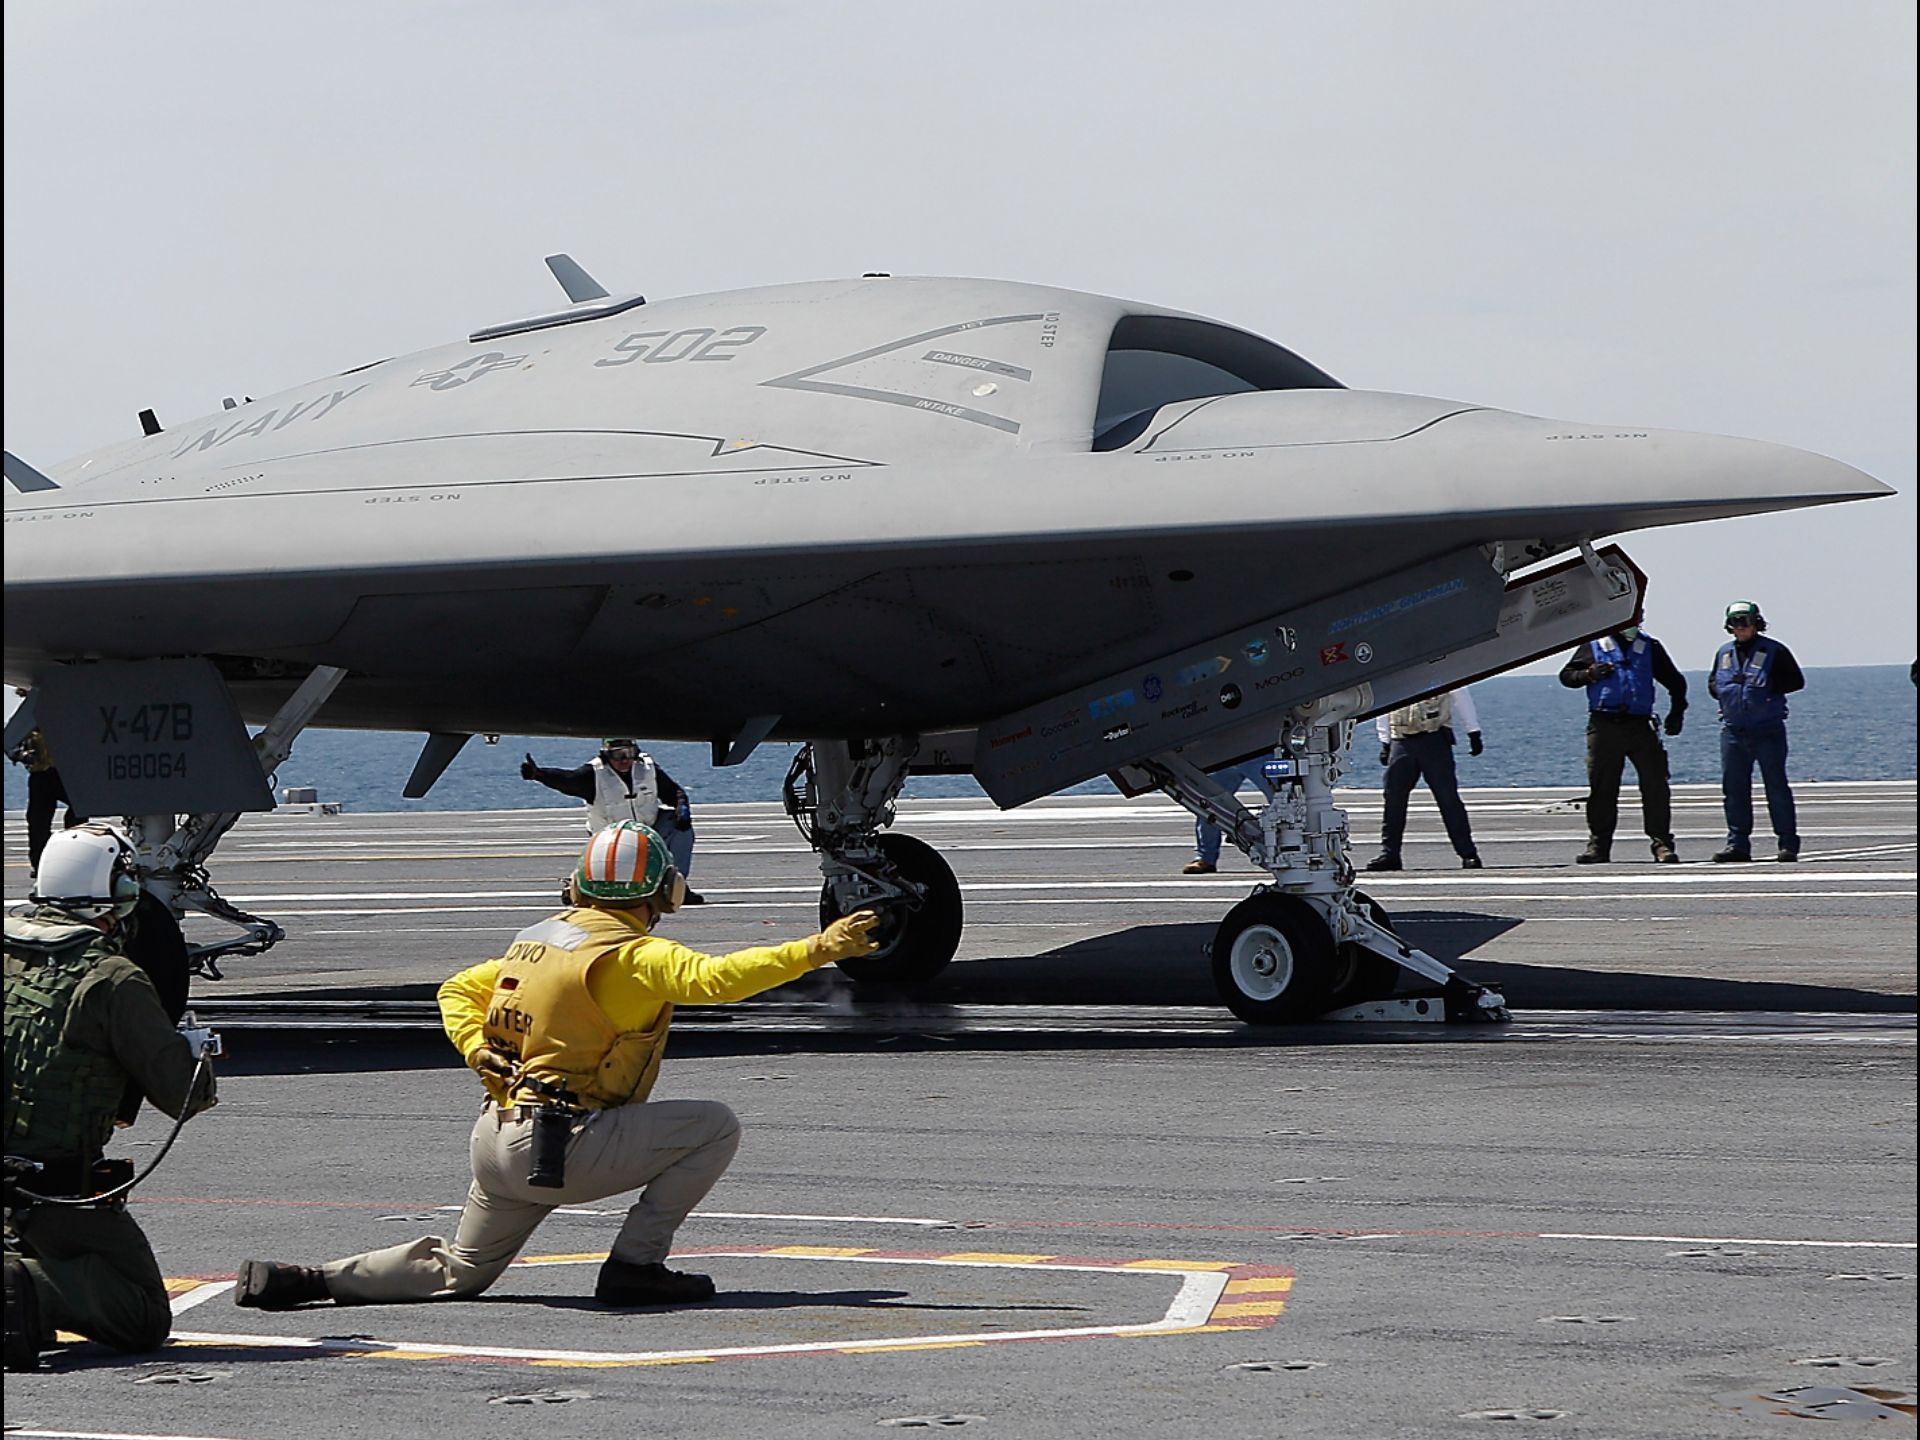 A U.S. Navy X-47B drone is prepared for launch on the USS George H. W. Bush off the coast of Virginia.